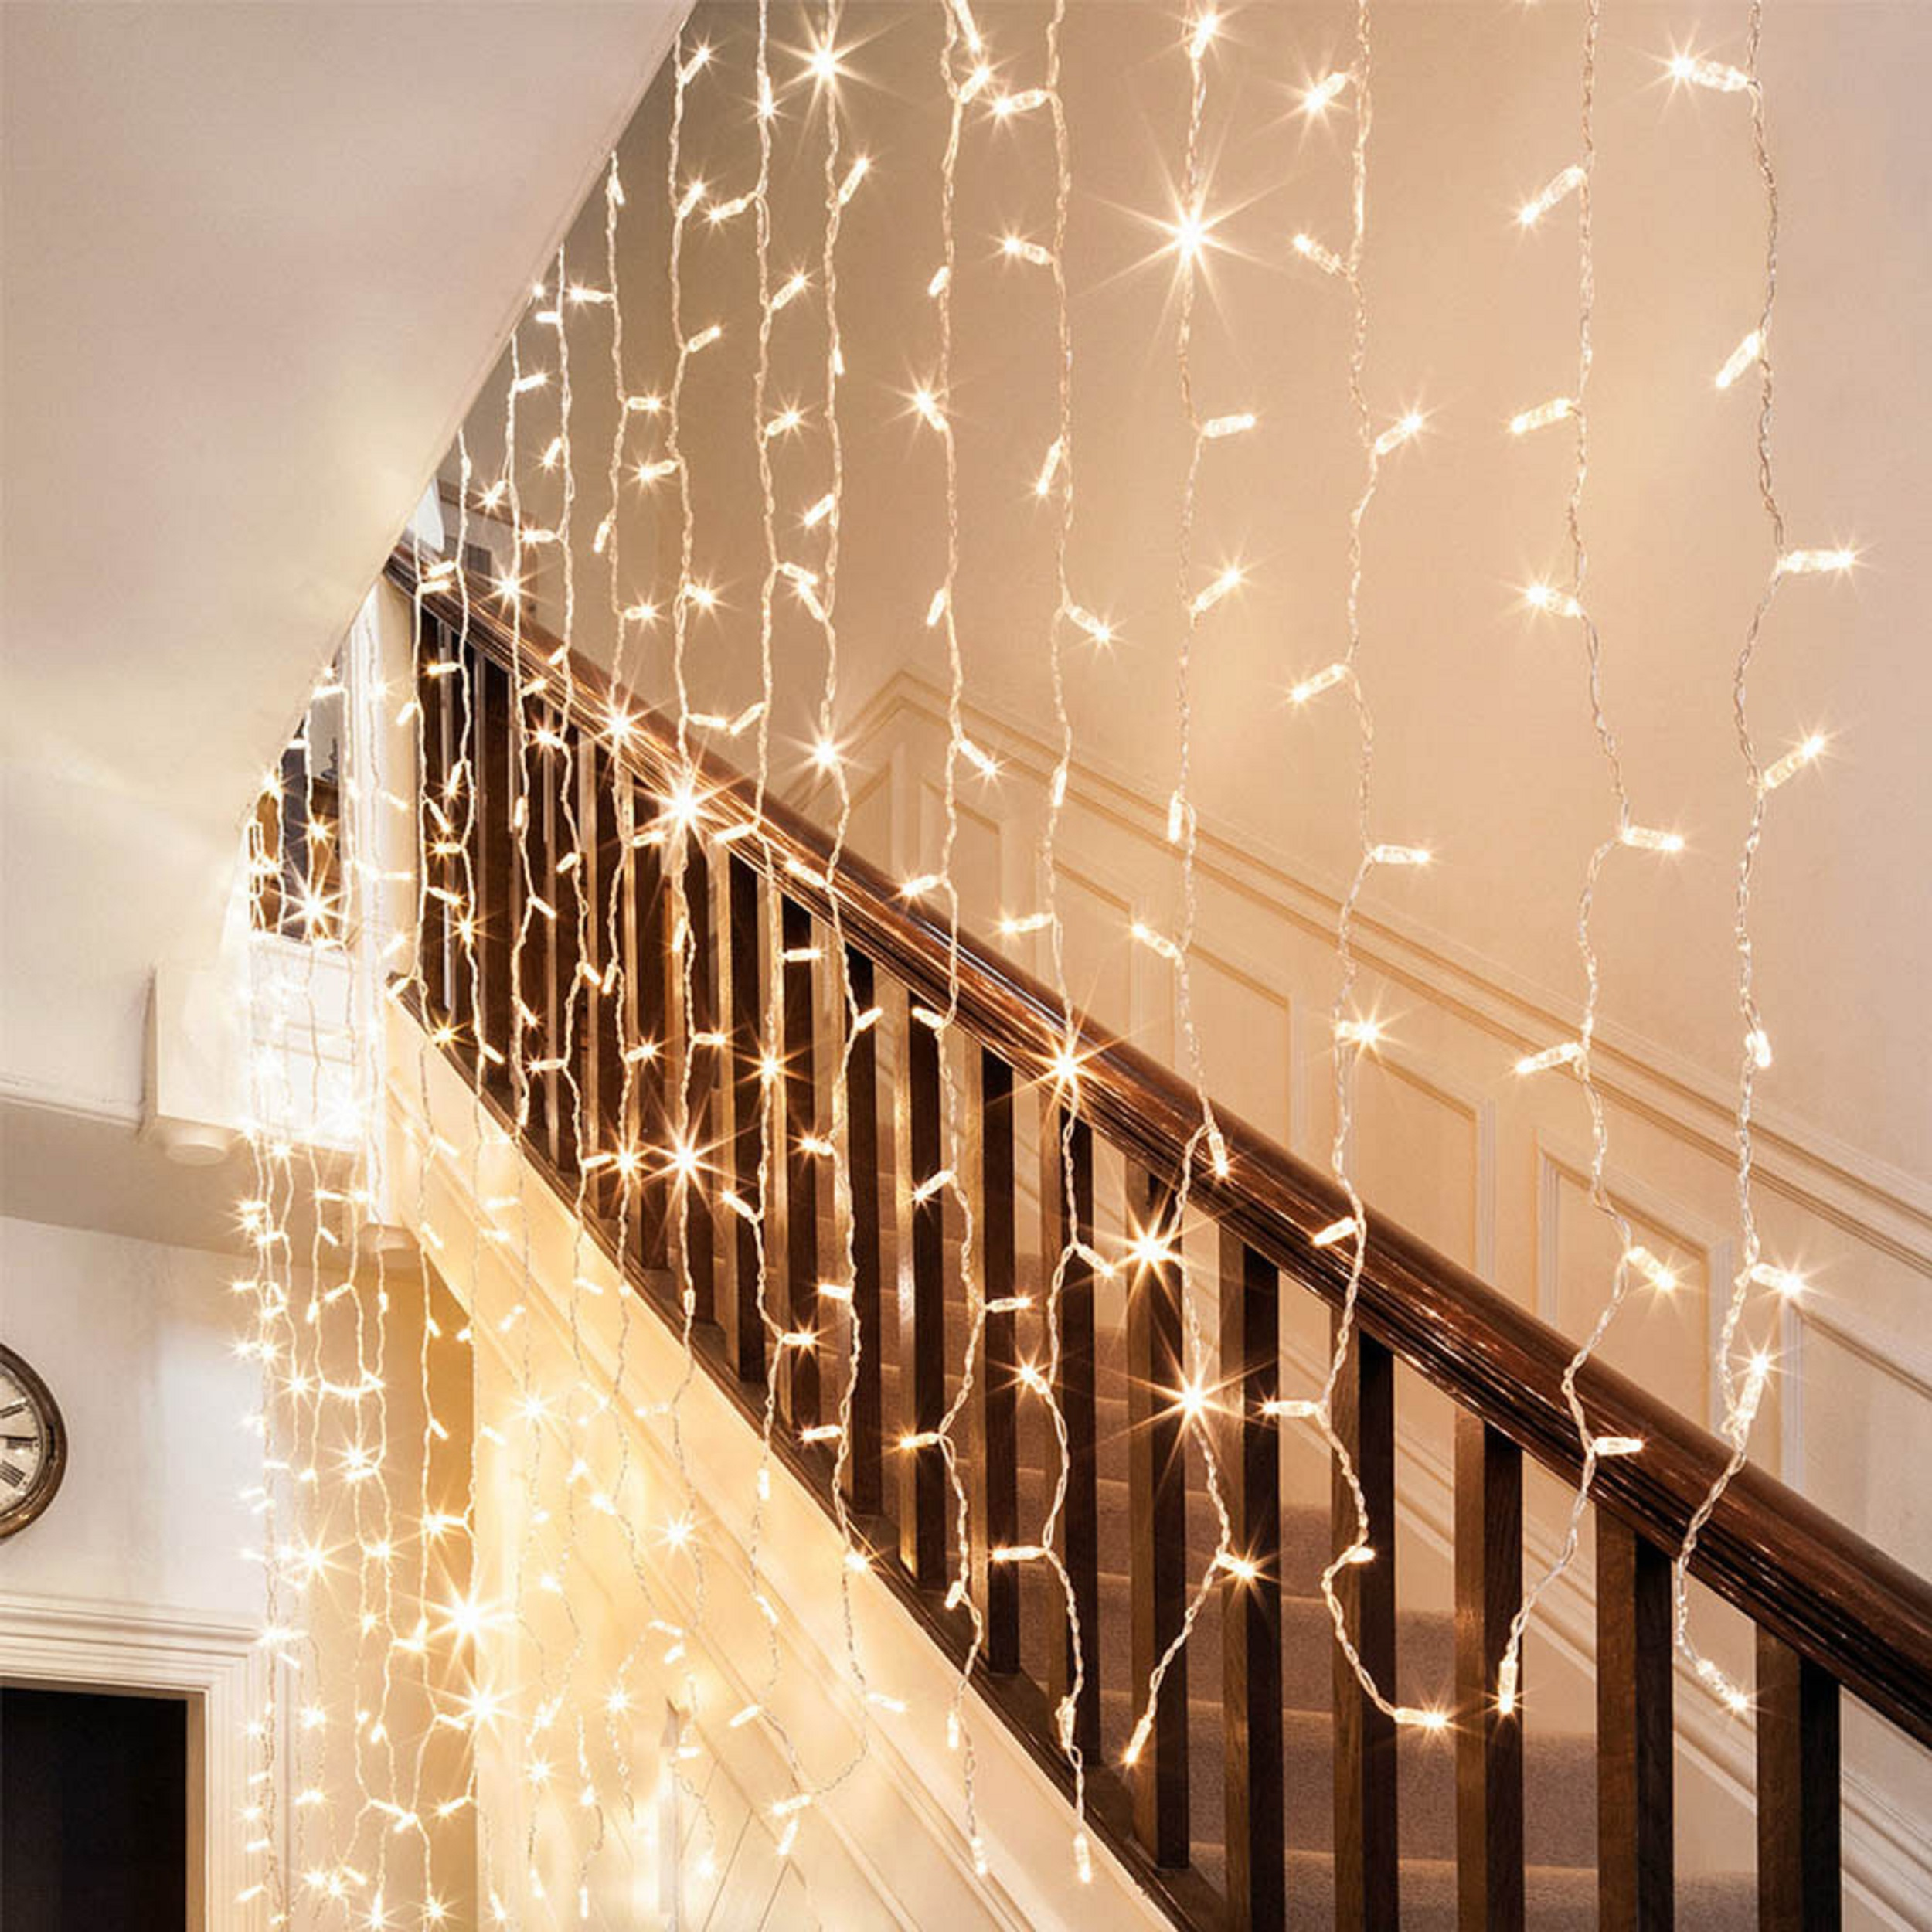 TORCHSTAR 9.8ft x 9.8ft LED Curtain Lights, Starry Christmas String Light, Indoor Decoration for Festival, Wedding, Party, Living Room, Bedroom, Warm White